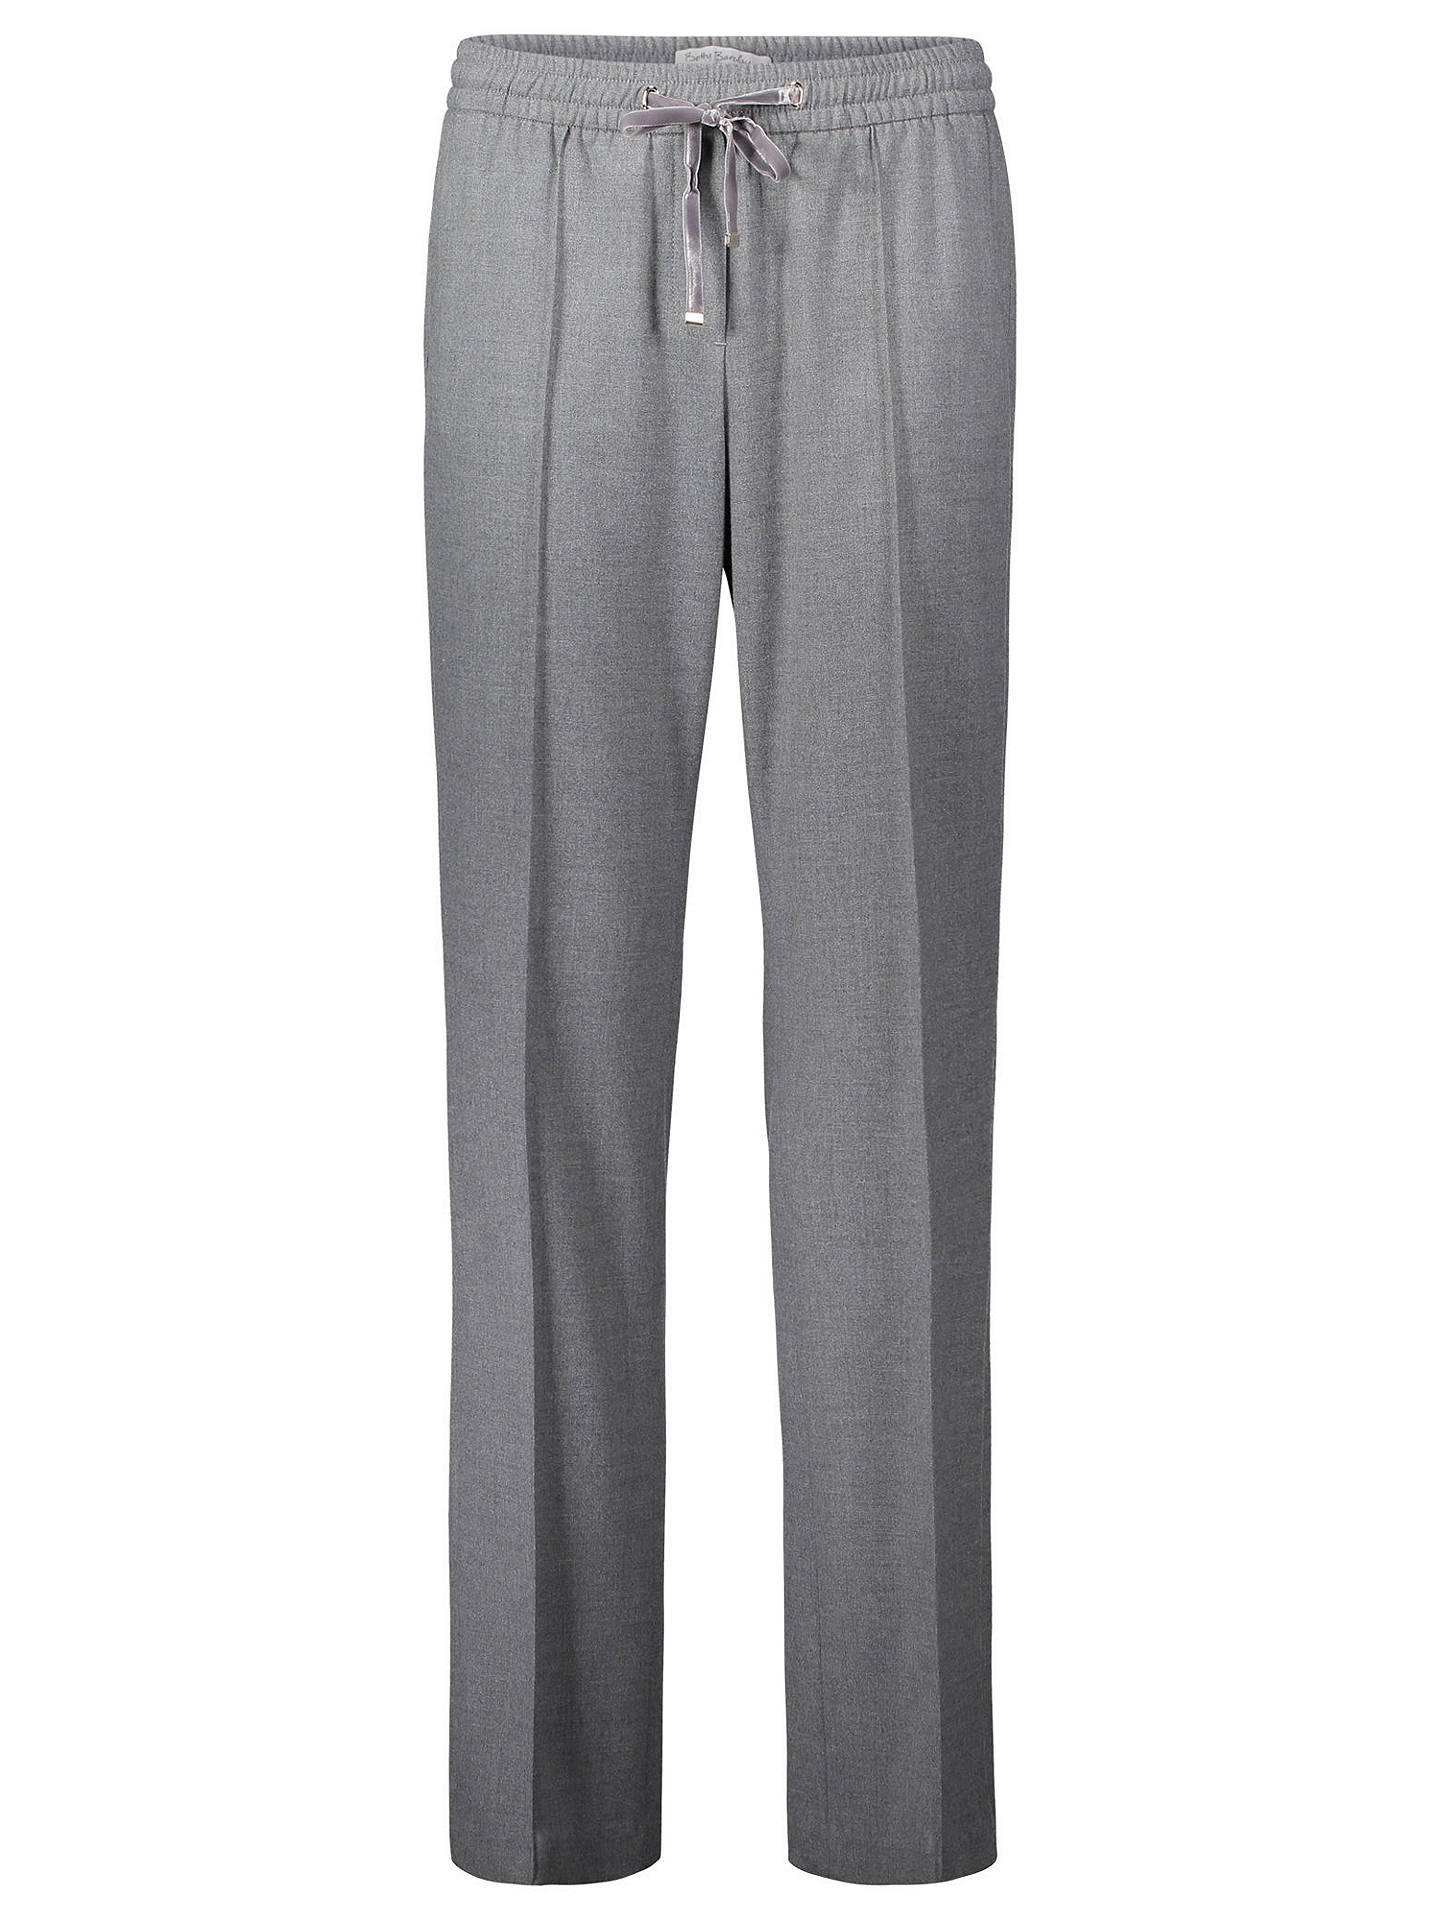 Buy Betty Barclay Skinny Pull-On Trousers, Middle Grey Melange, 10 Online at johnlewis.com